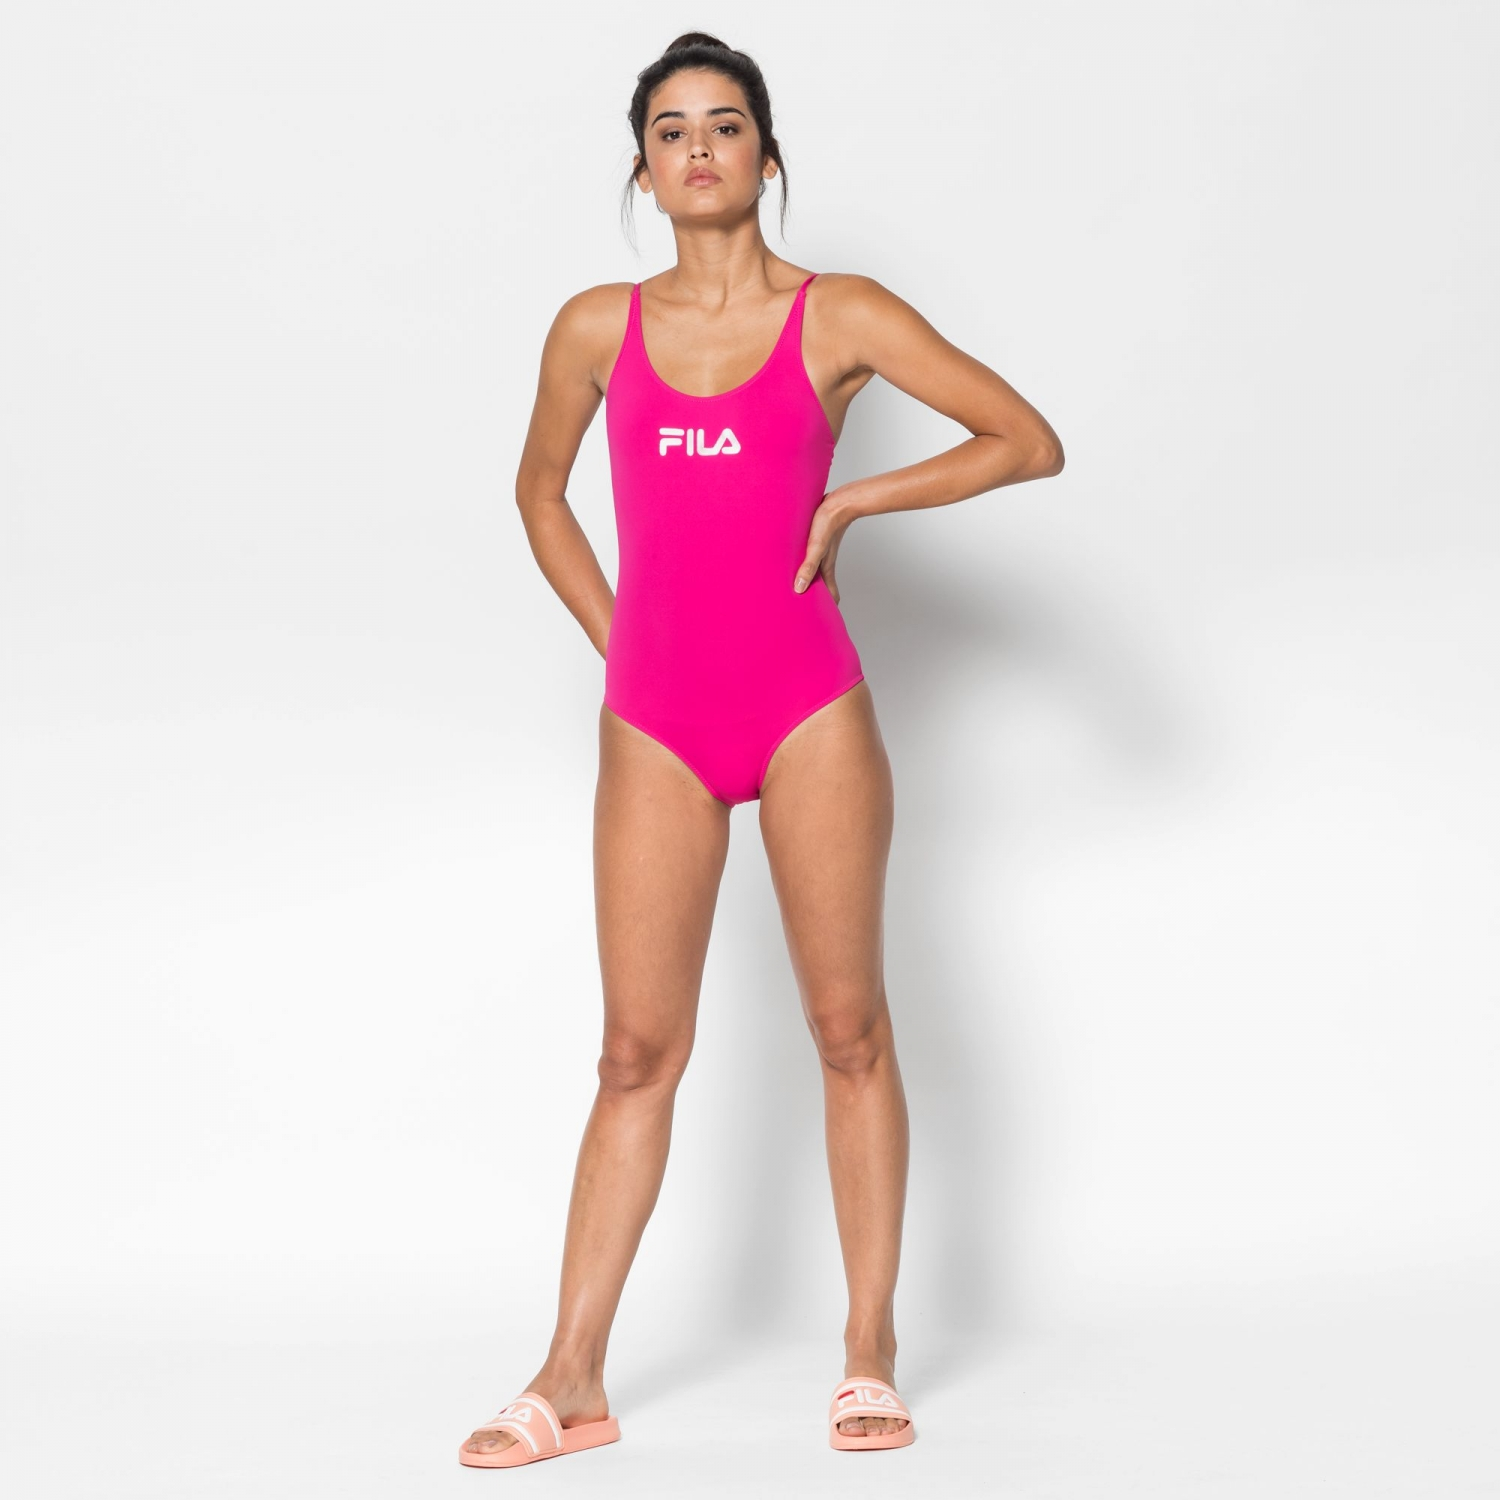 Fila Saidi Bathing Suit Bild 3